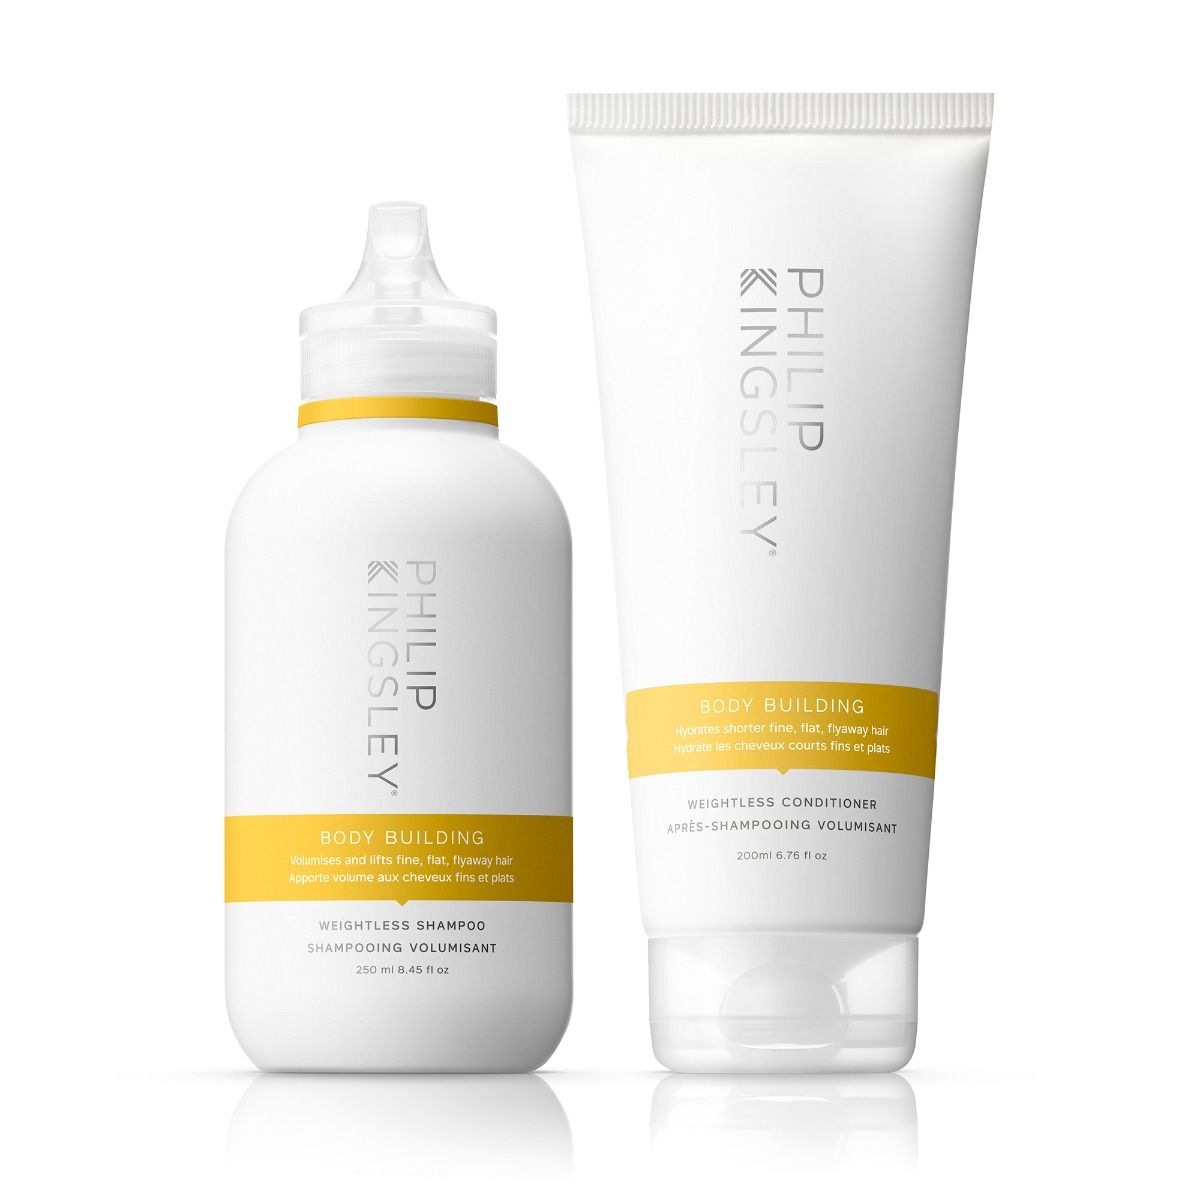 Body Building Weightless Shampoo & Body Building Weightless Conditioner Duo